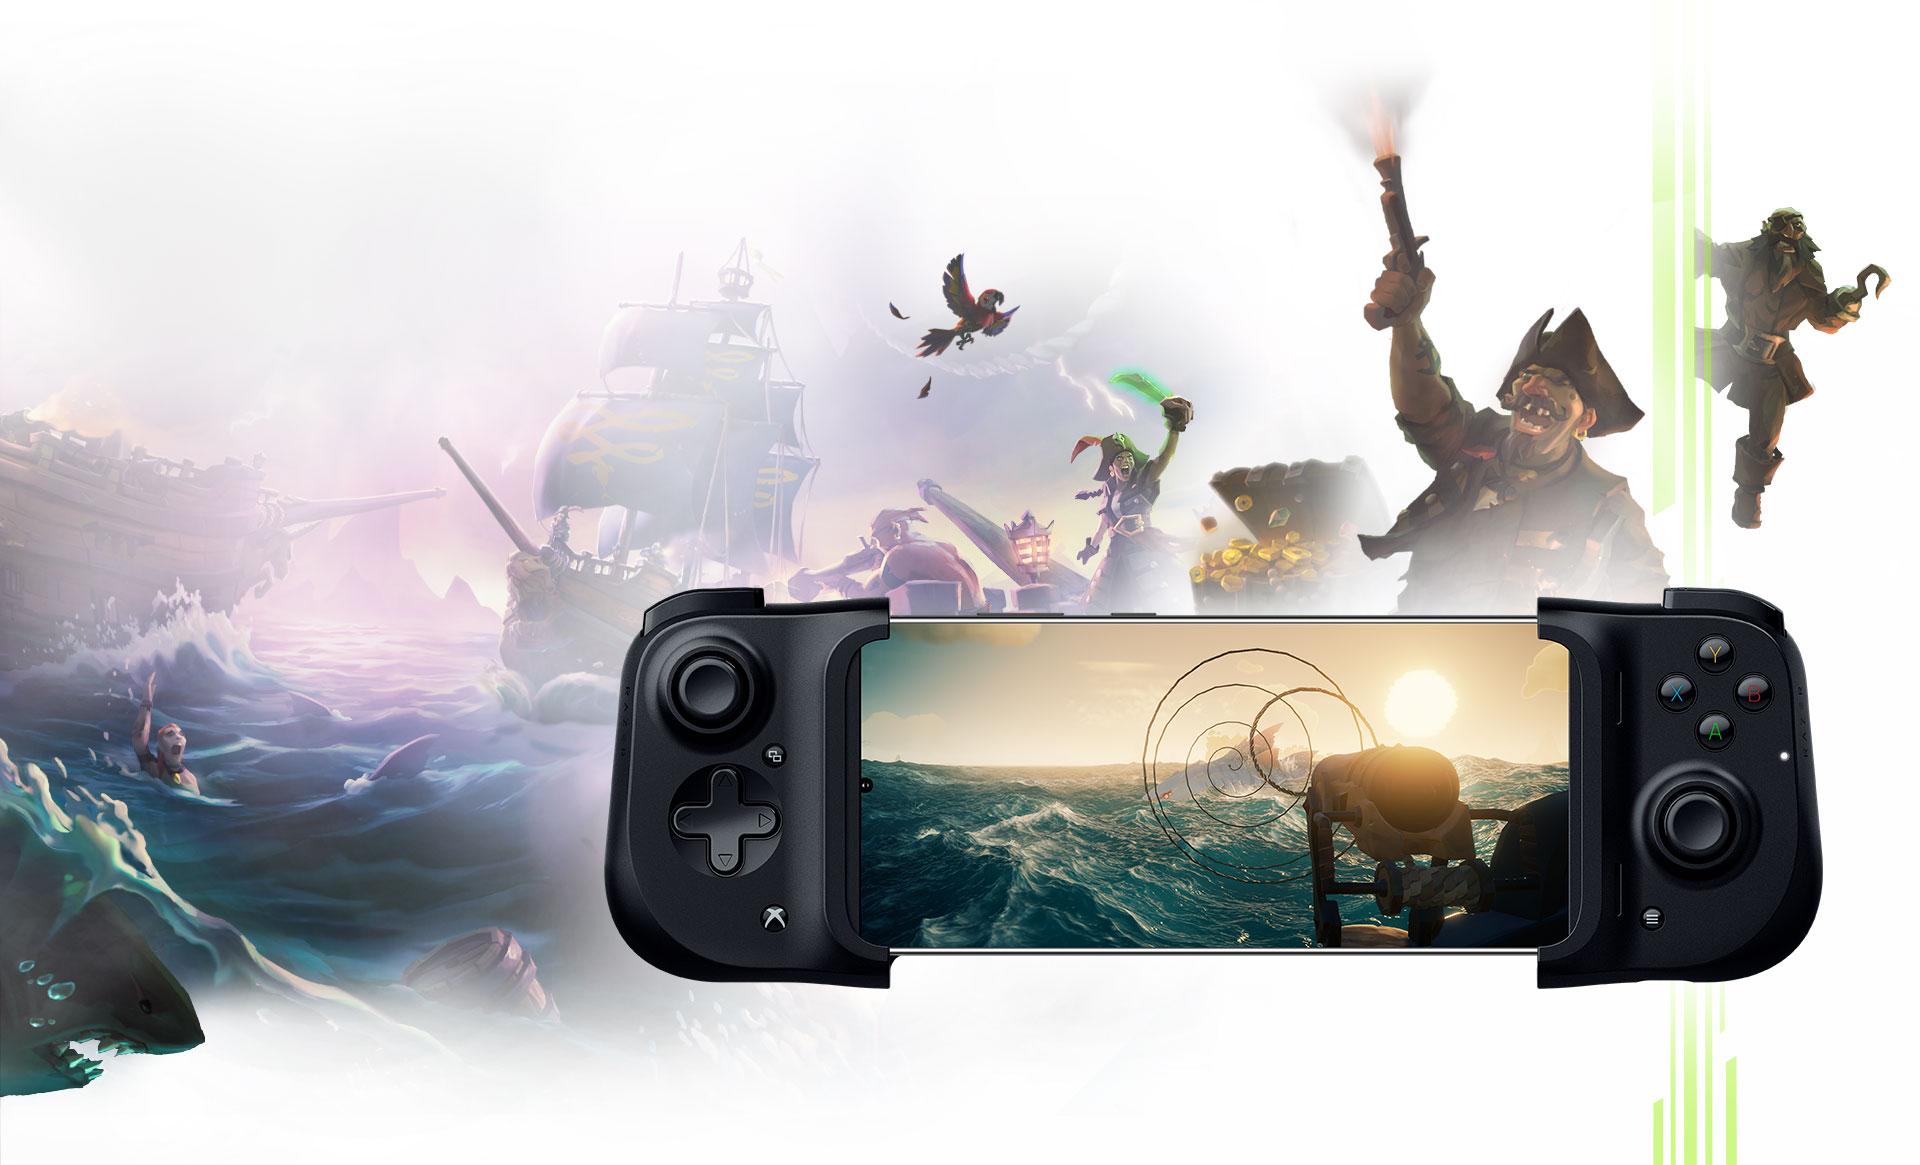 A Razer Kishi controller attached to a mobile phone showing Sea of Thieves gameplay